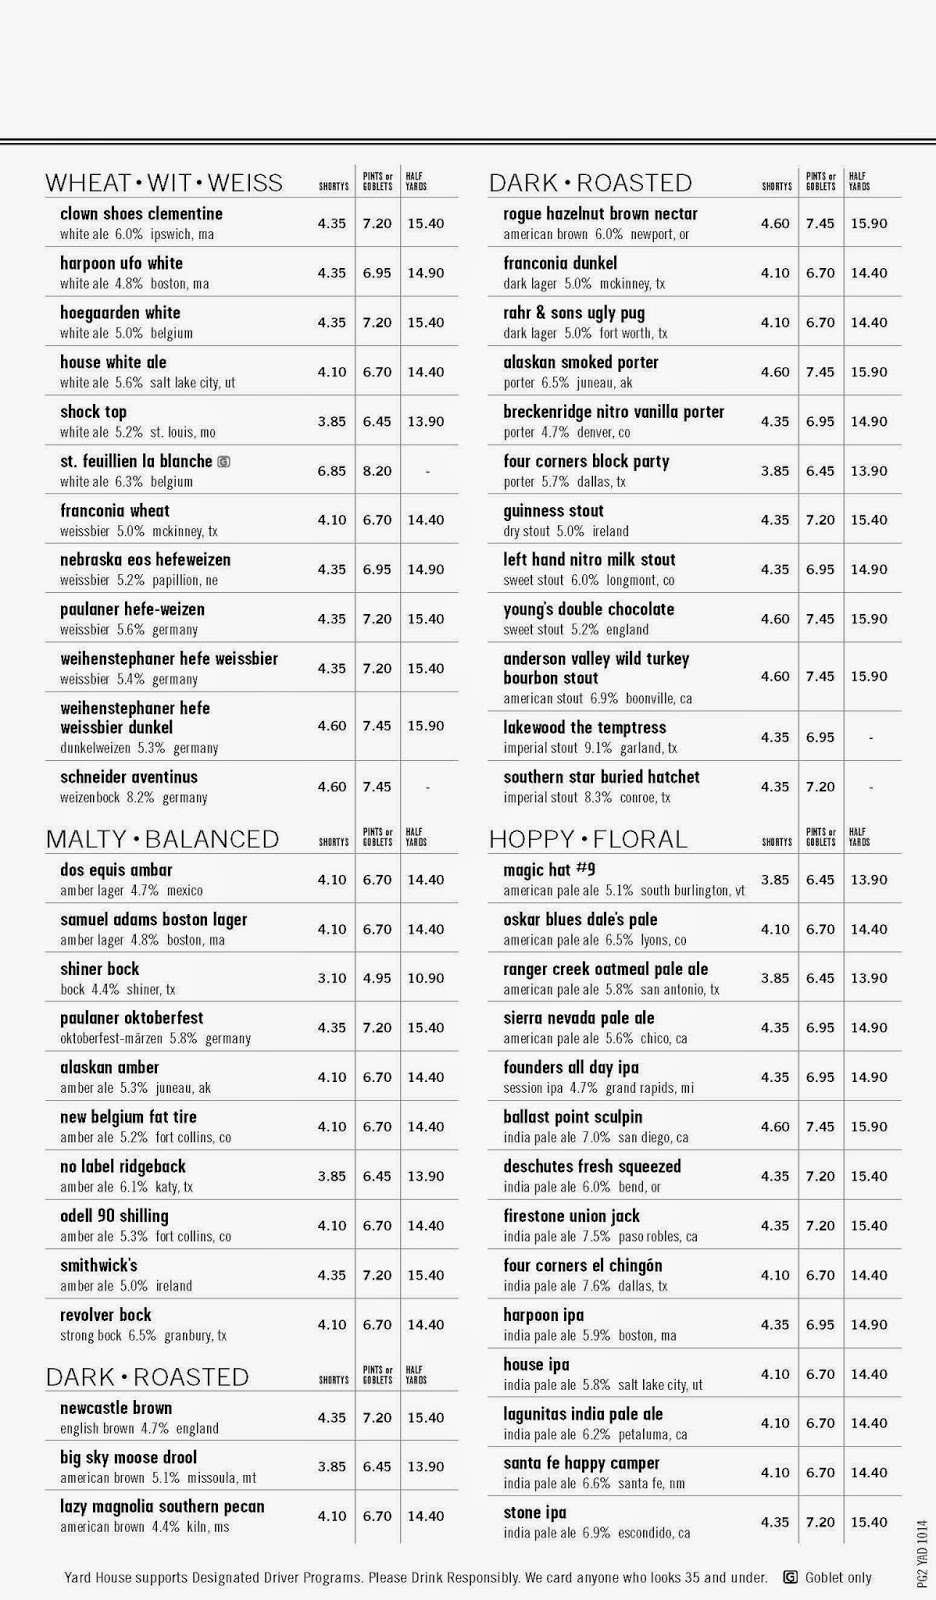 Dallas Beer Snobs The Yard House Addison